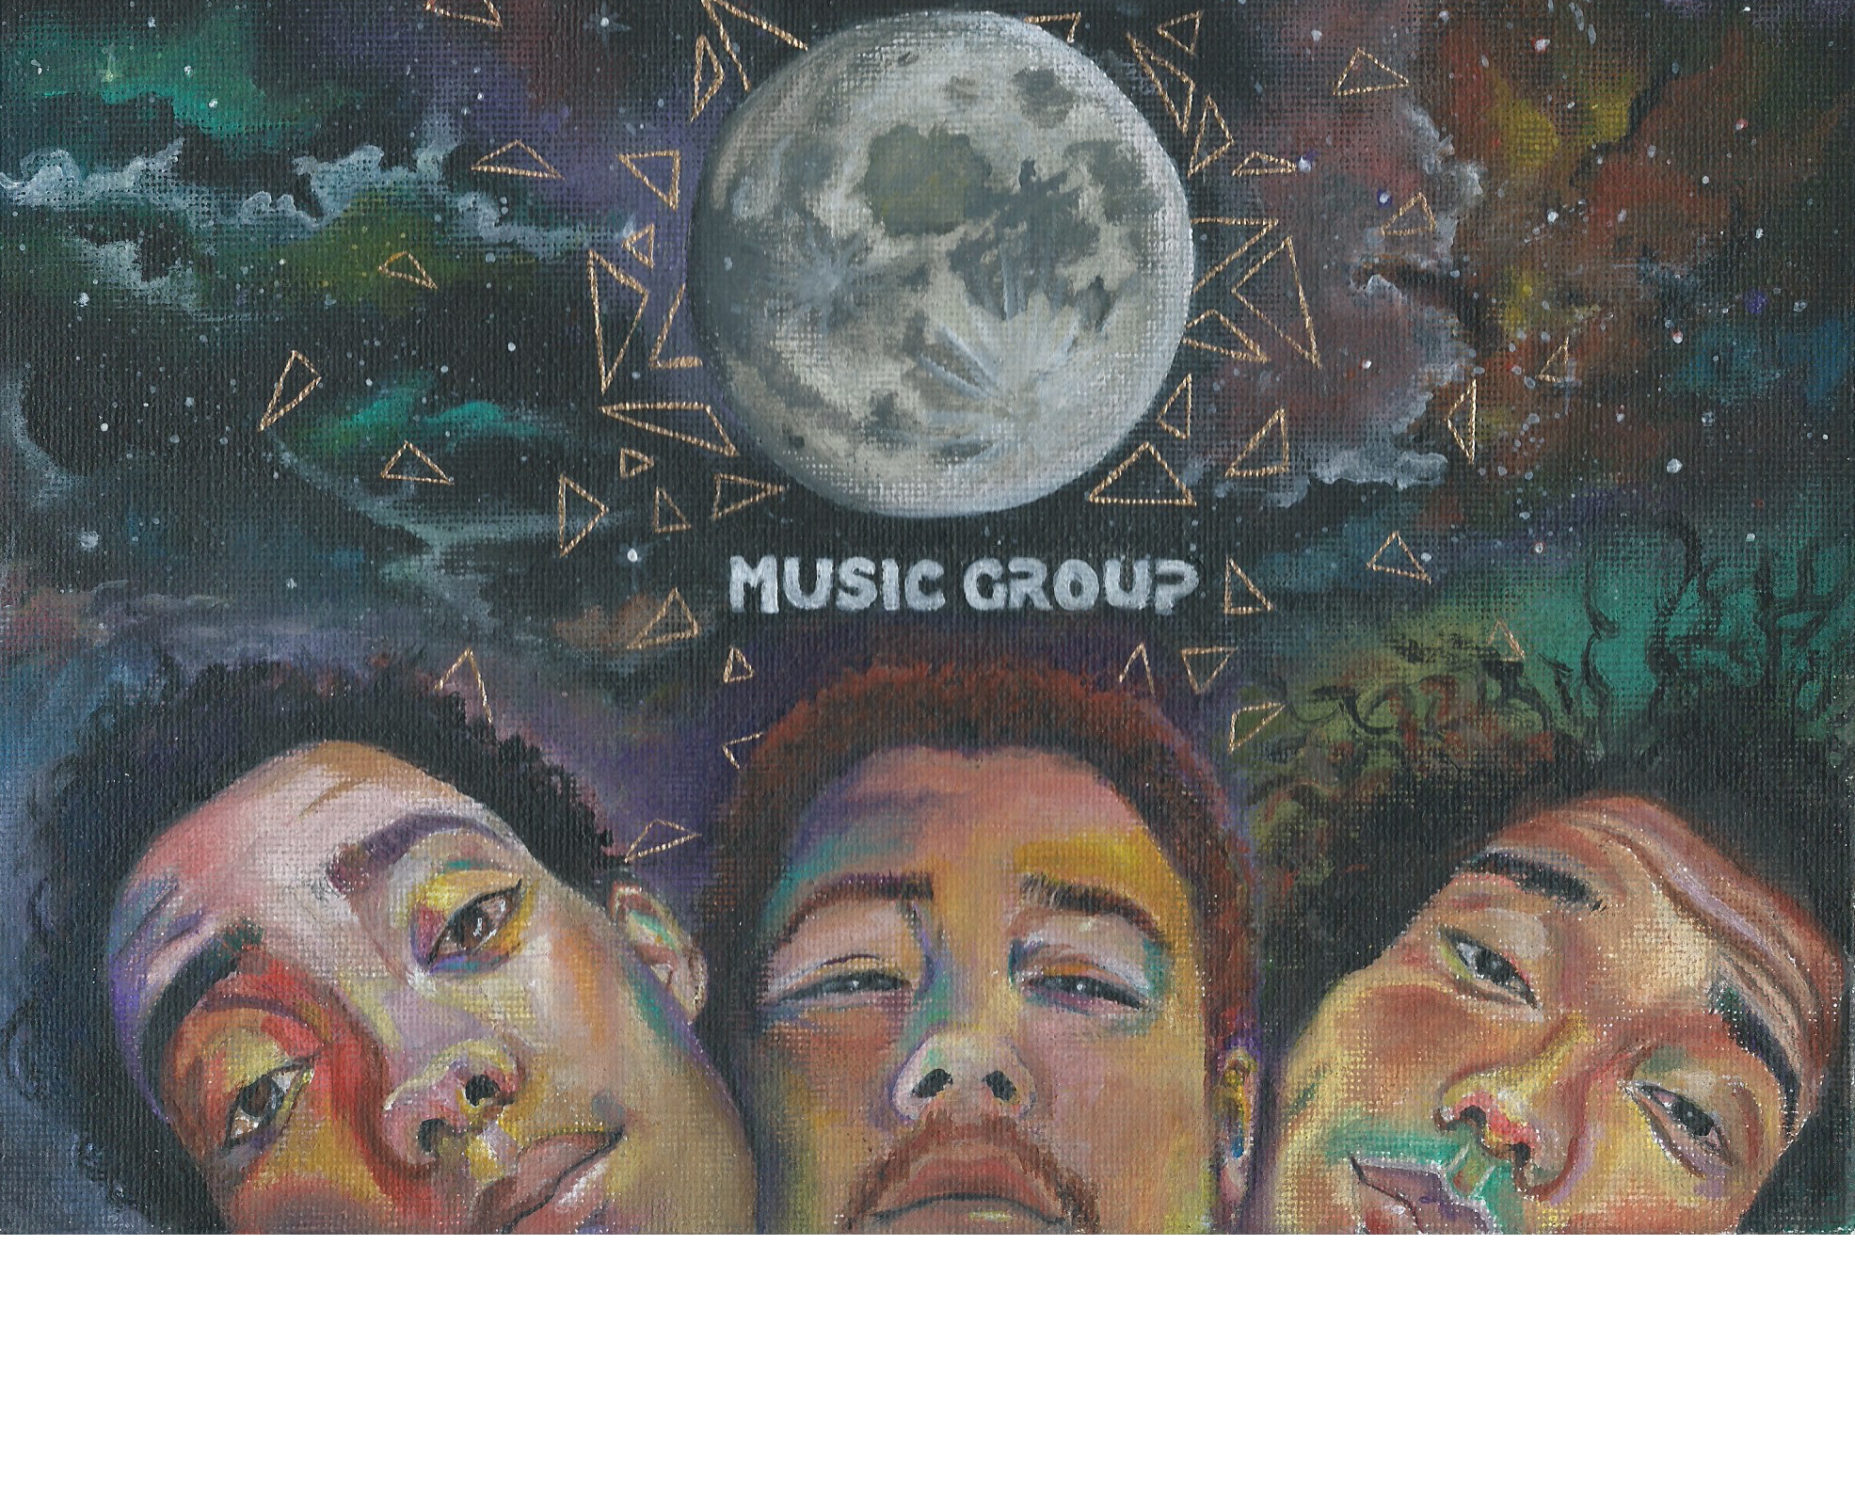 FYI Music Group Illustration by Angela Cross